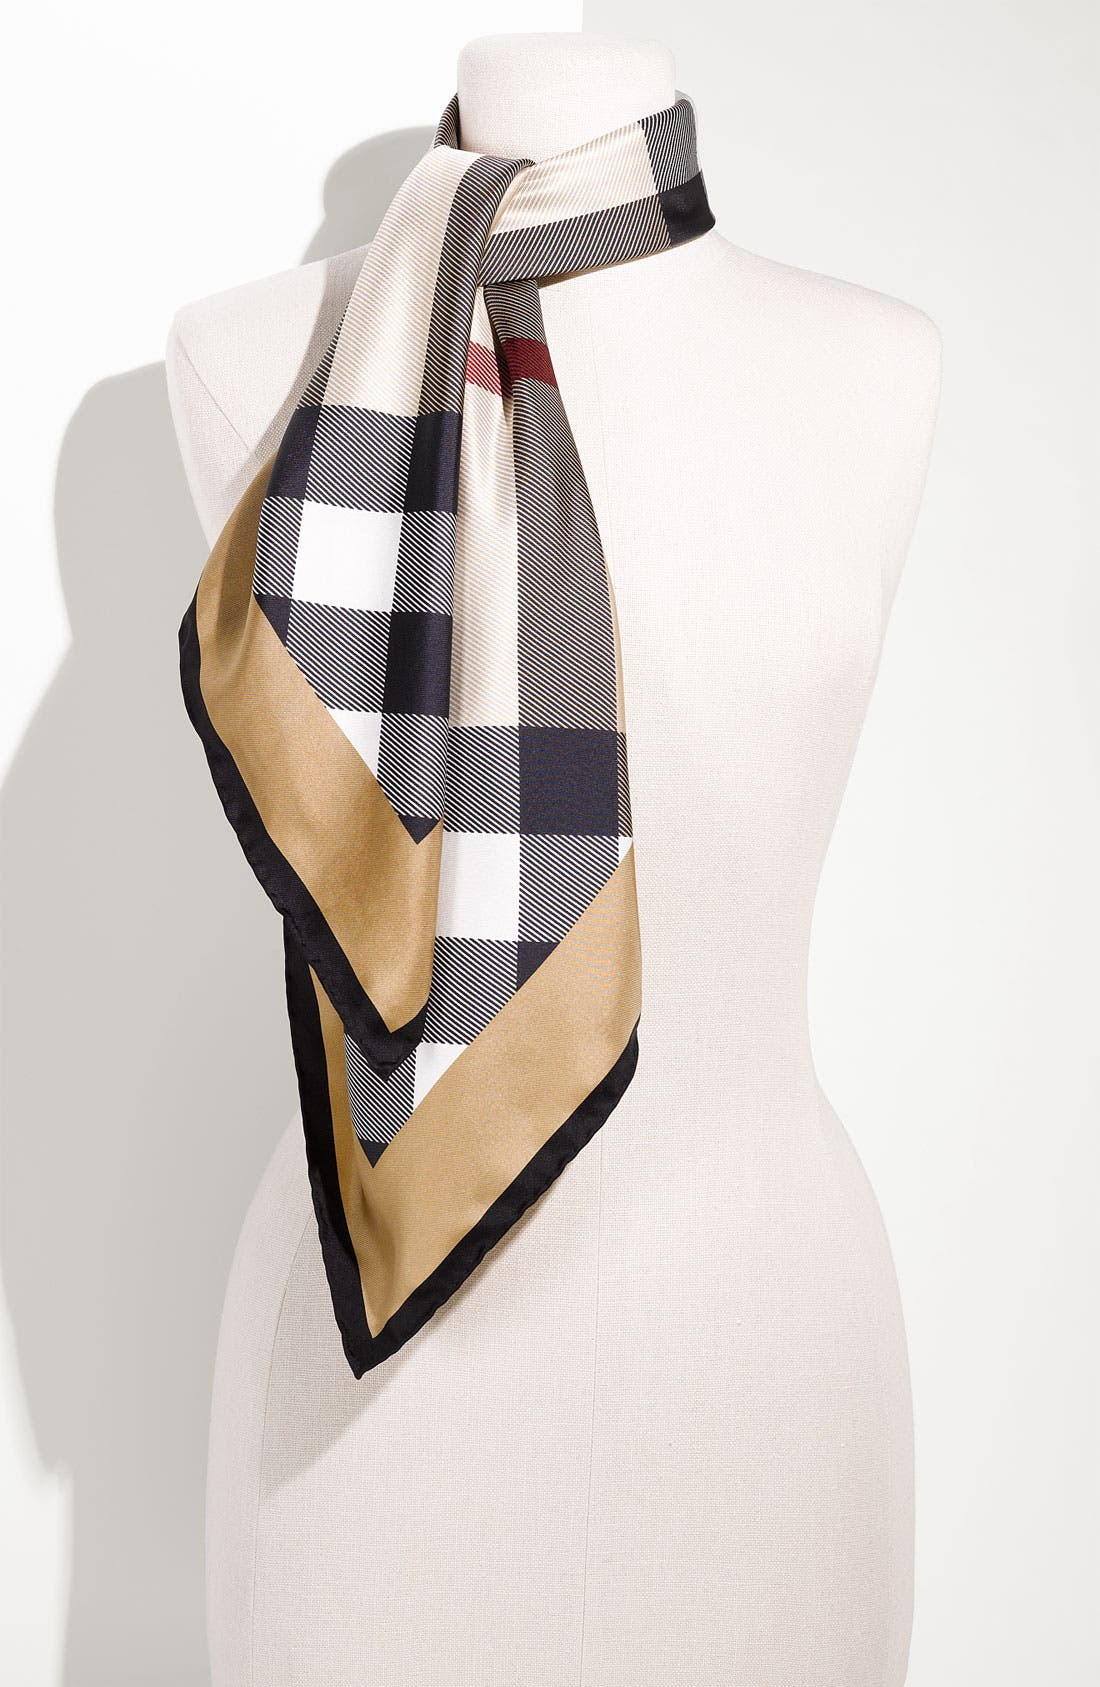 Alternate Image 1 Selected - Burberry Tweed Check Scarf